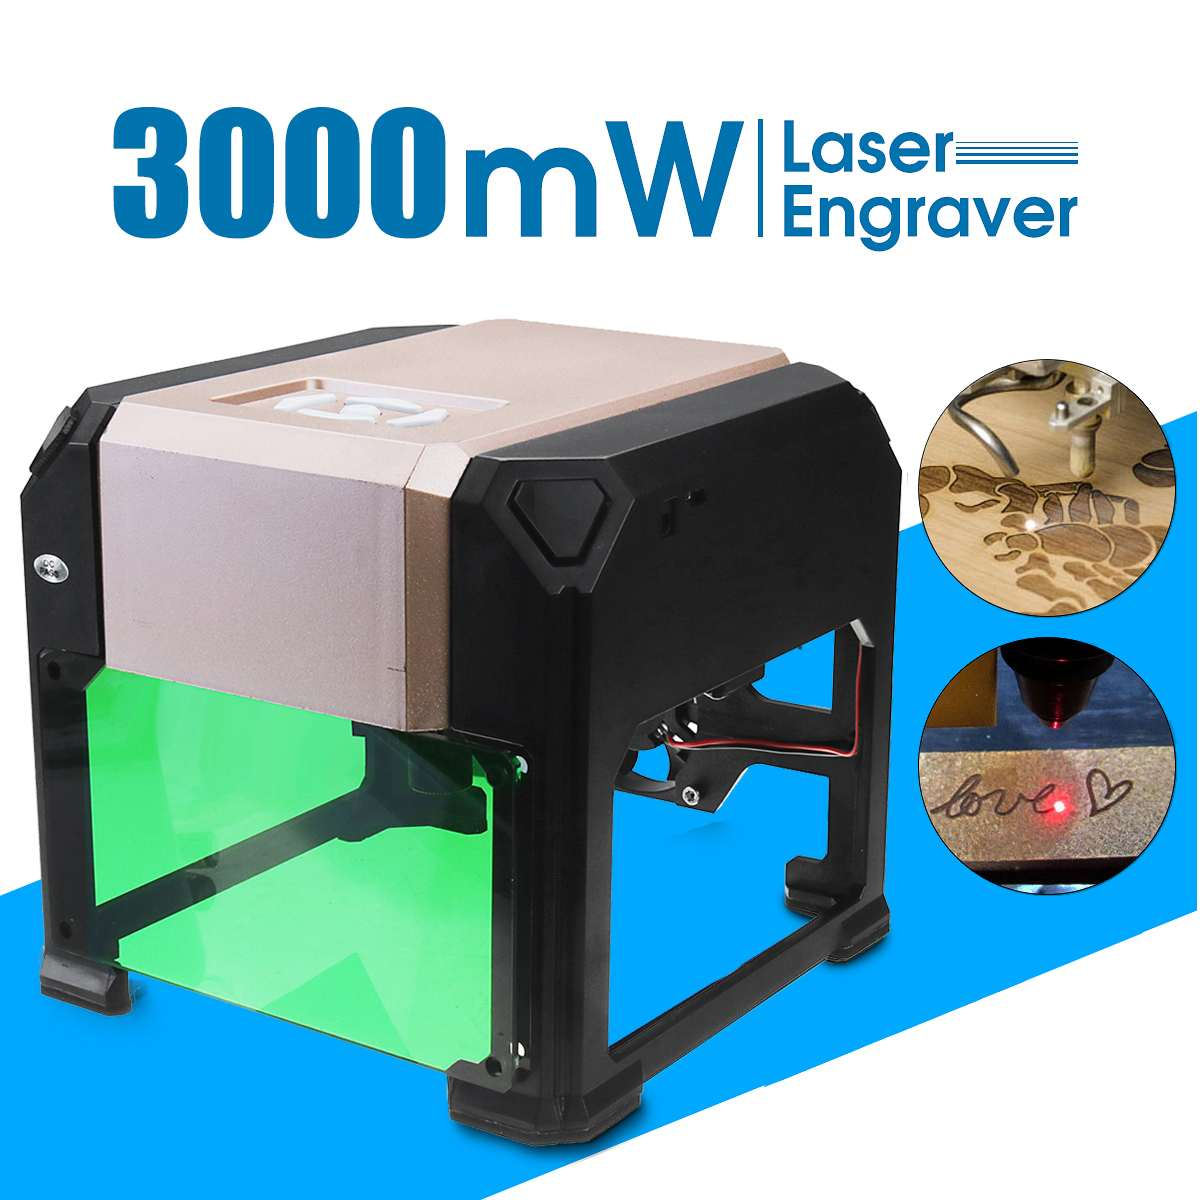 3000 mW CNC Laser Engraver DIY Logo Mark Printer Laser Engraving Carving Machine for Home Use Handicraft Wood Tools